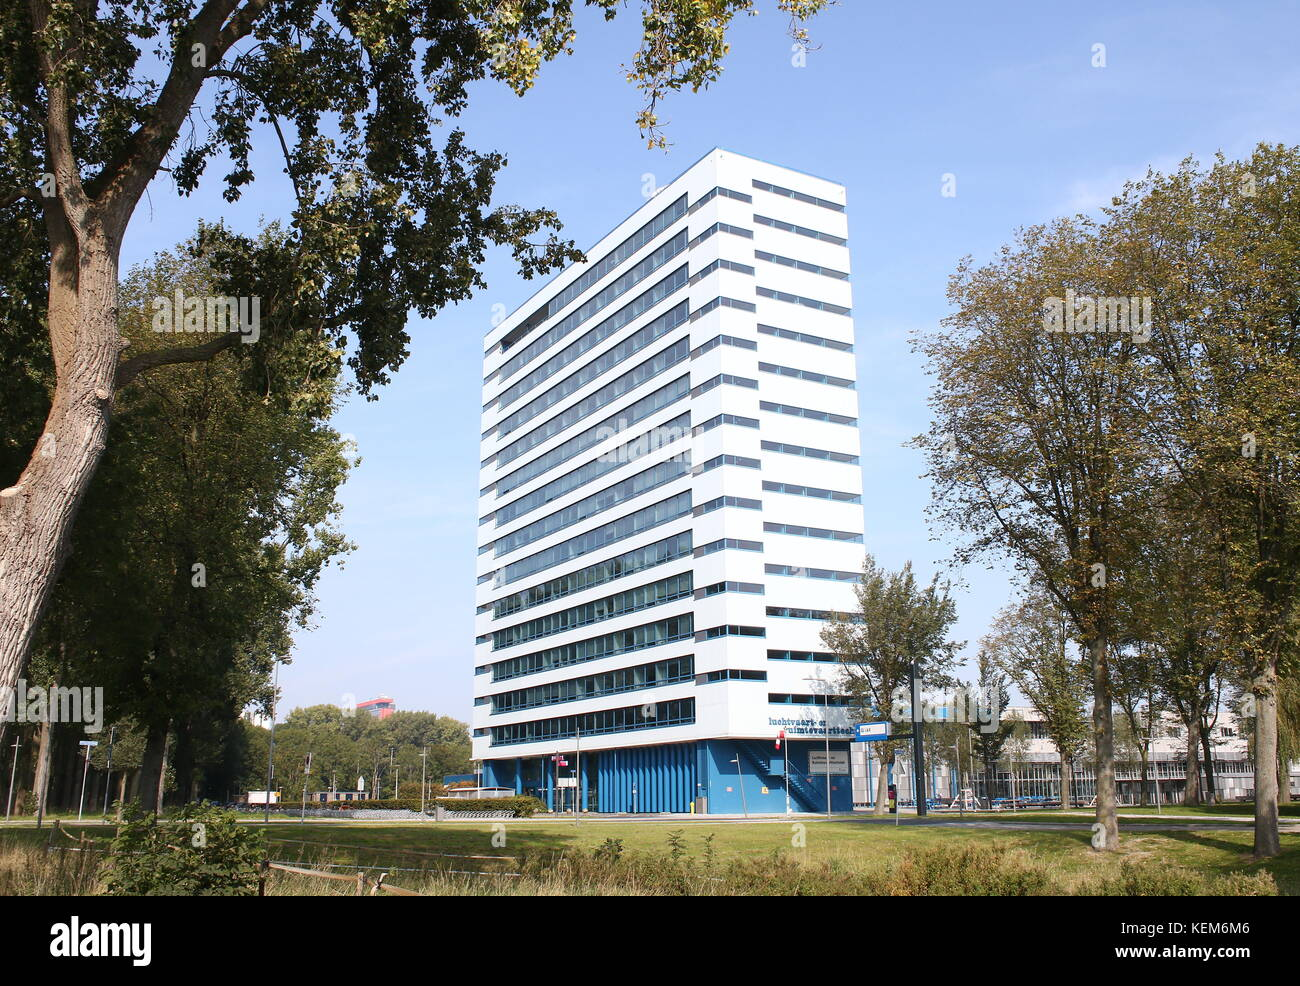 TU Delft Faculty of Aerospace Engineering building at the Delft University of Technology in the Netherlands - Stock Image